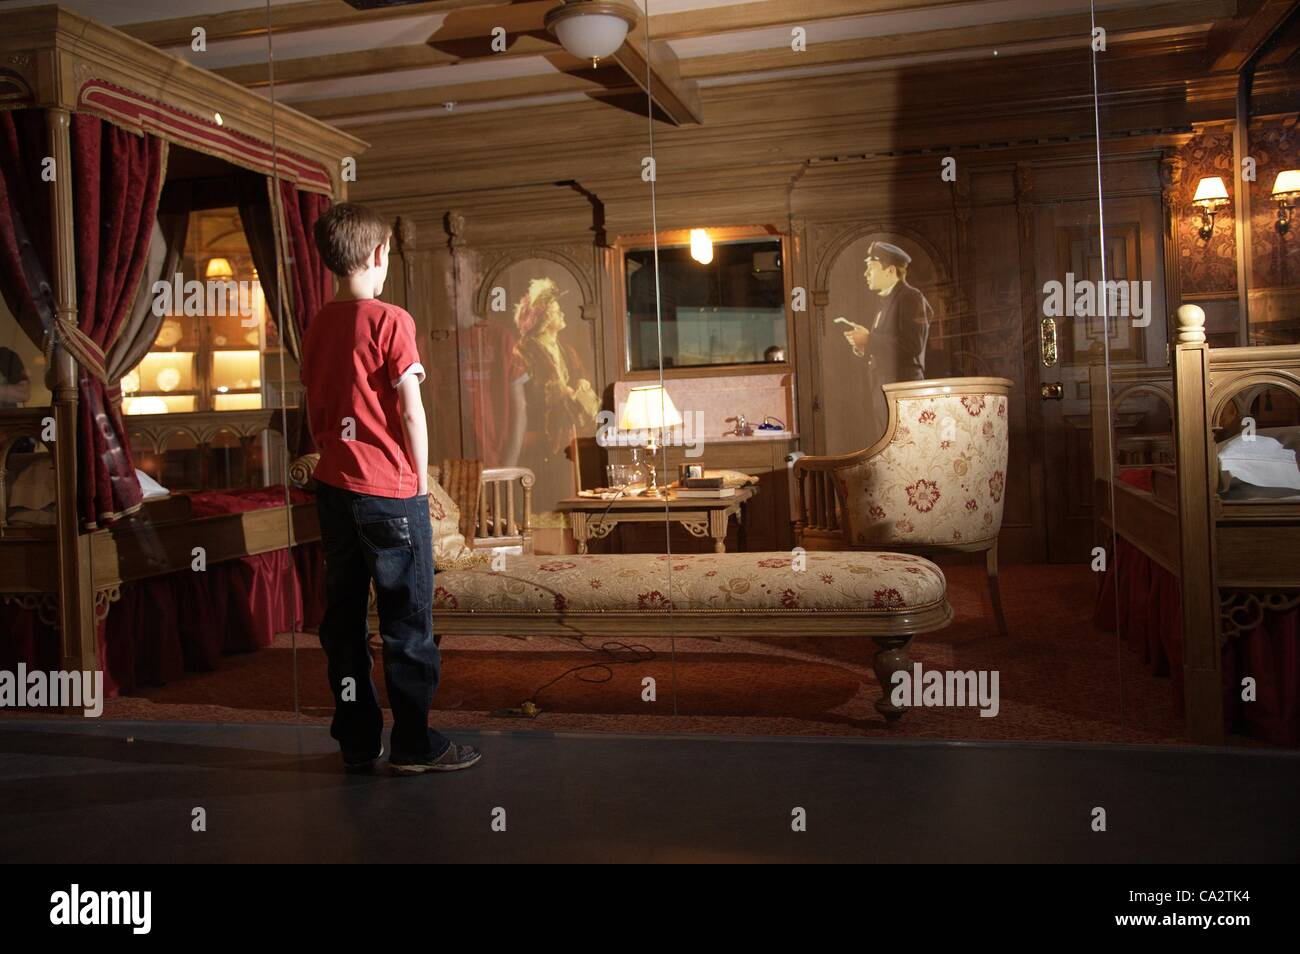 Young Boy Views A Recreation Of A First Class Cabin On The Titanic In The  Titanic